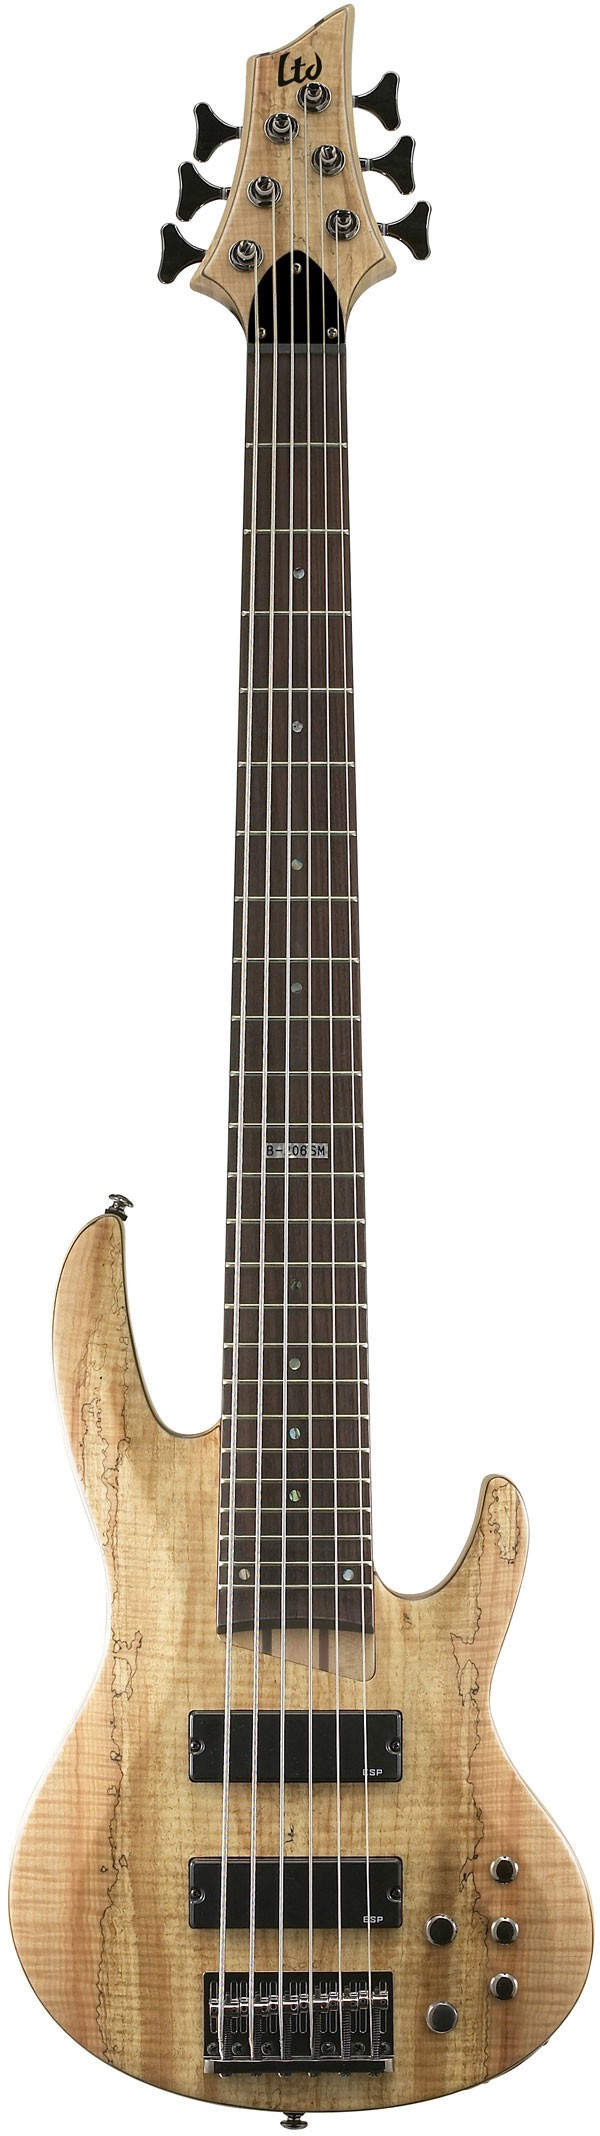 ESP LTD B-206 6-String Spalted Maple Bass . natural wood basses are so beautiful